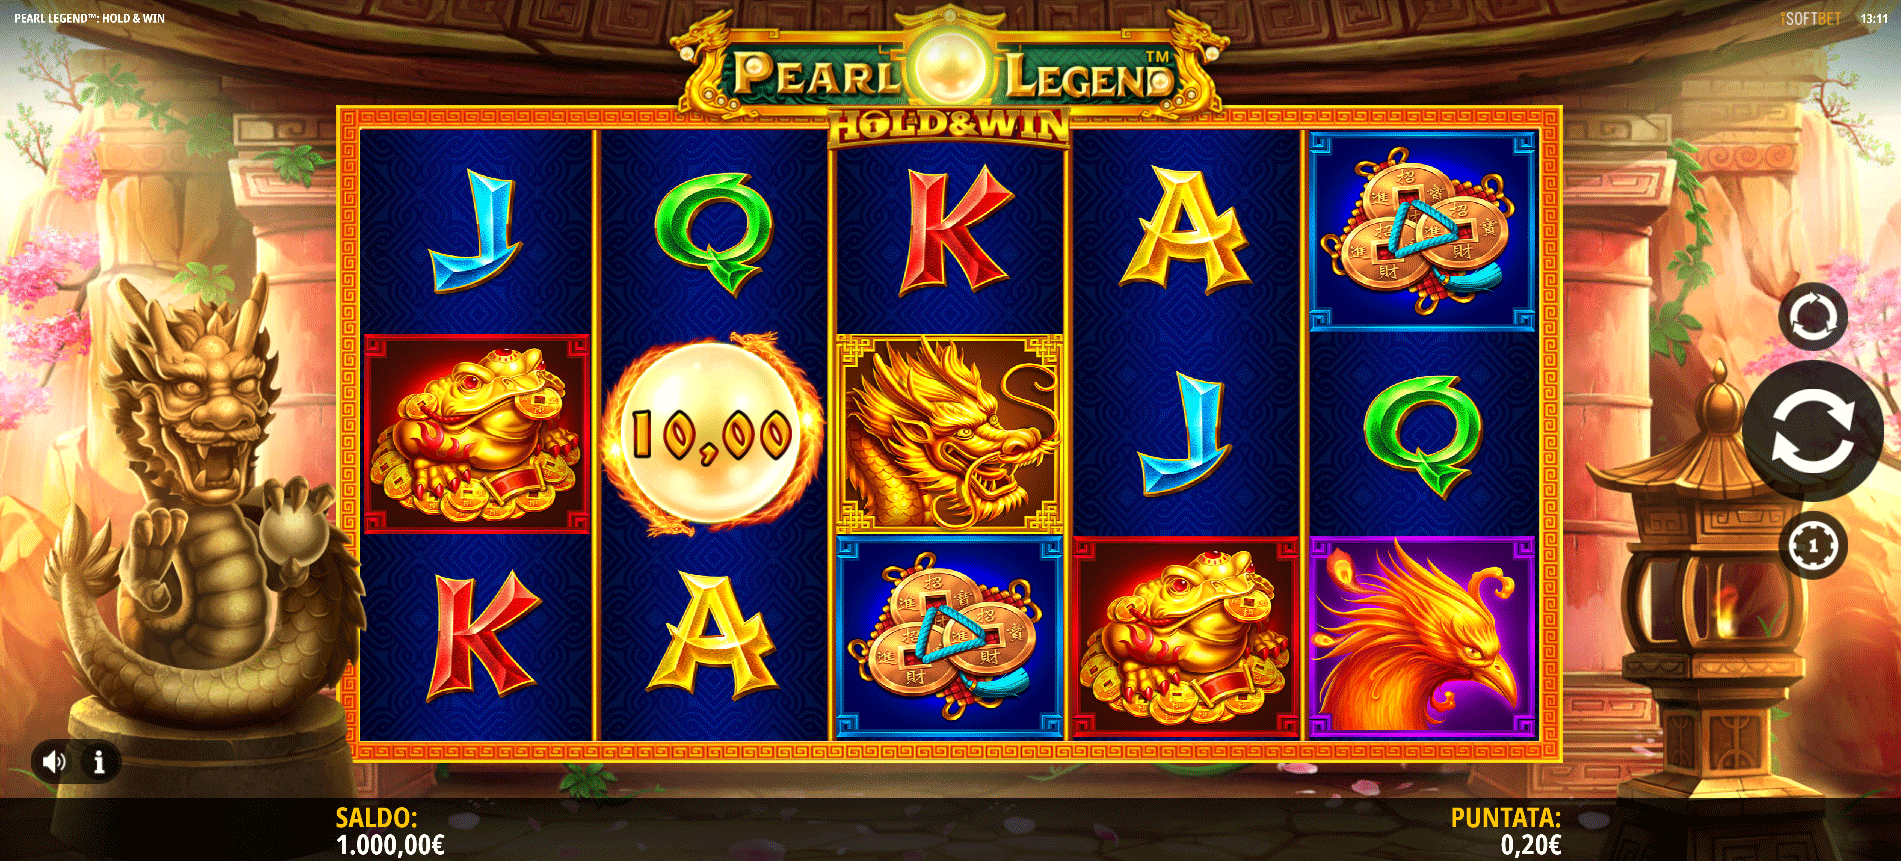 Slot Pearl Legend Hold and Win